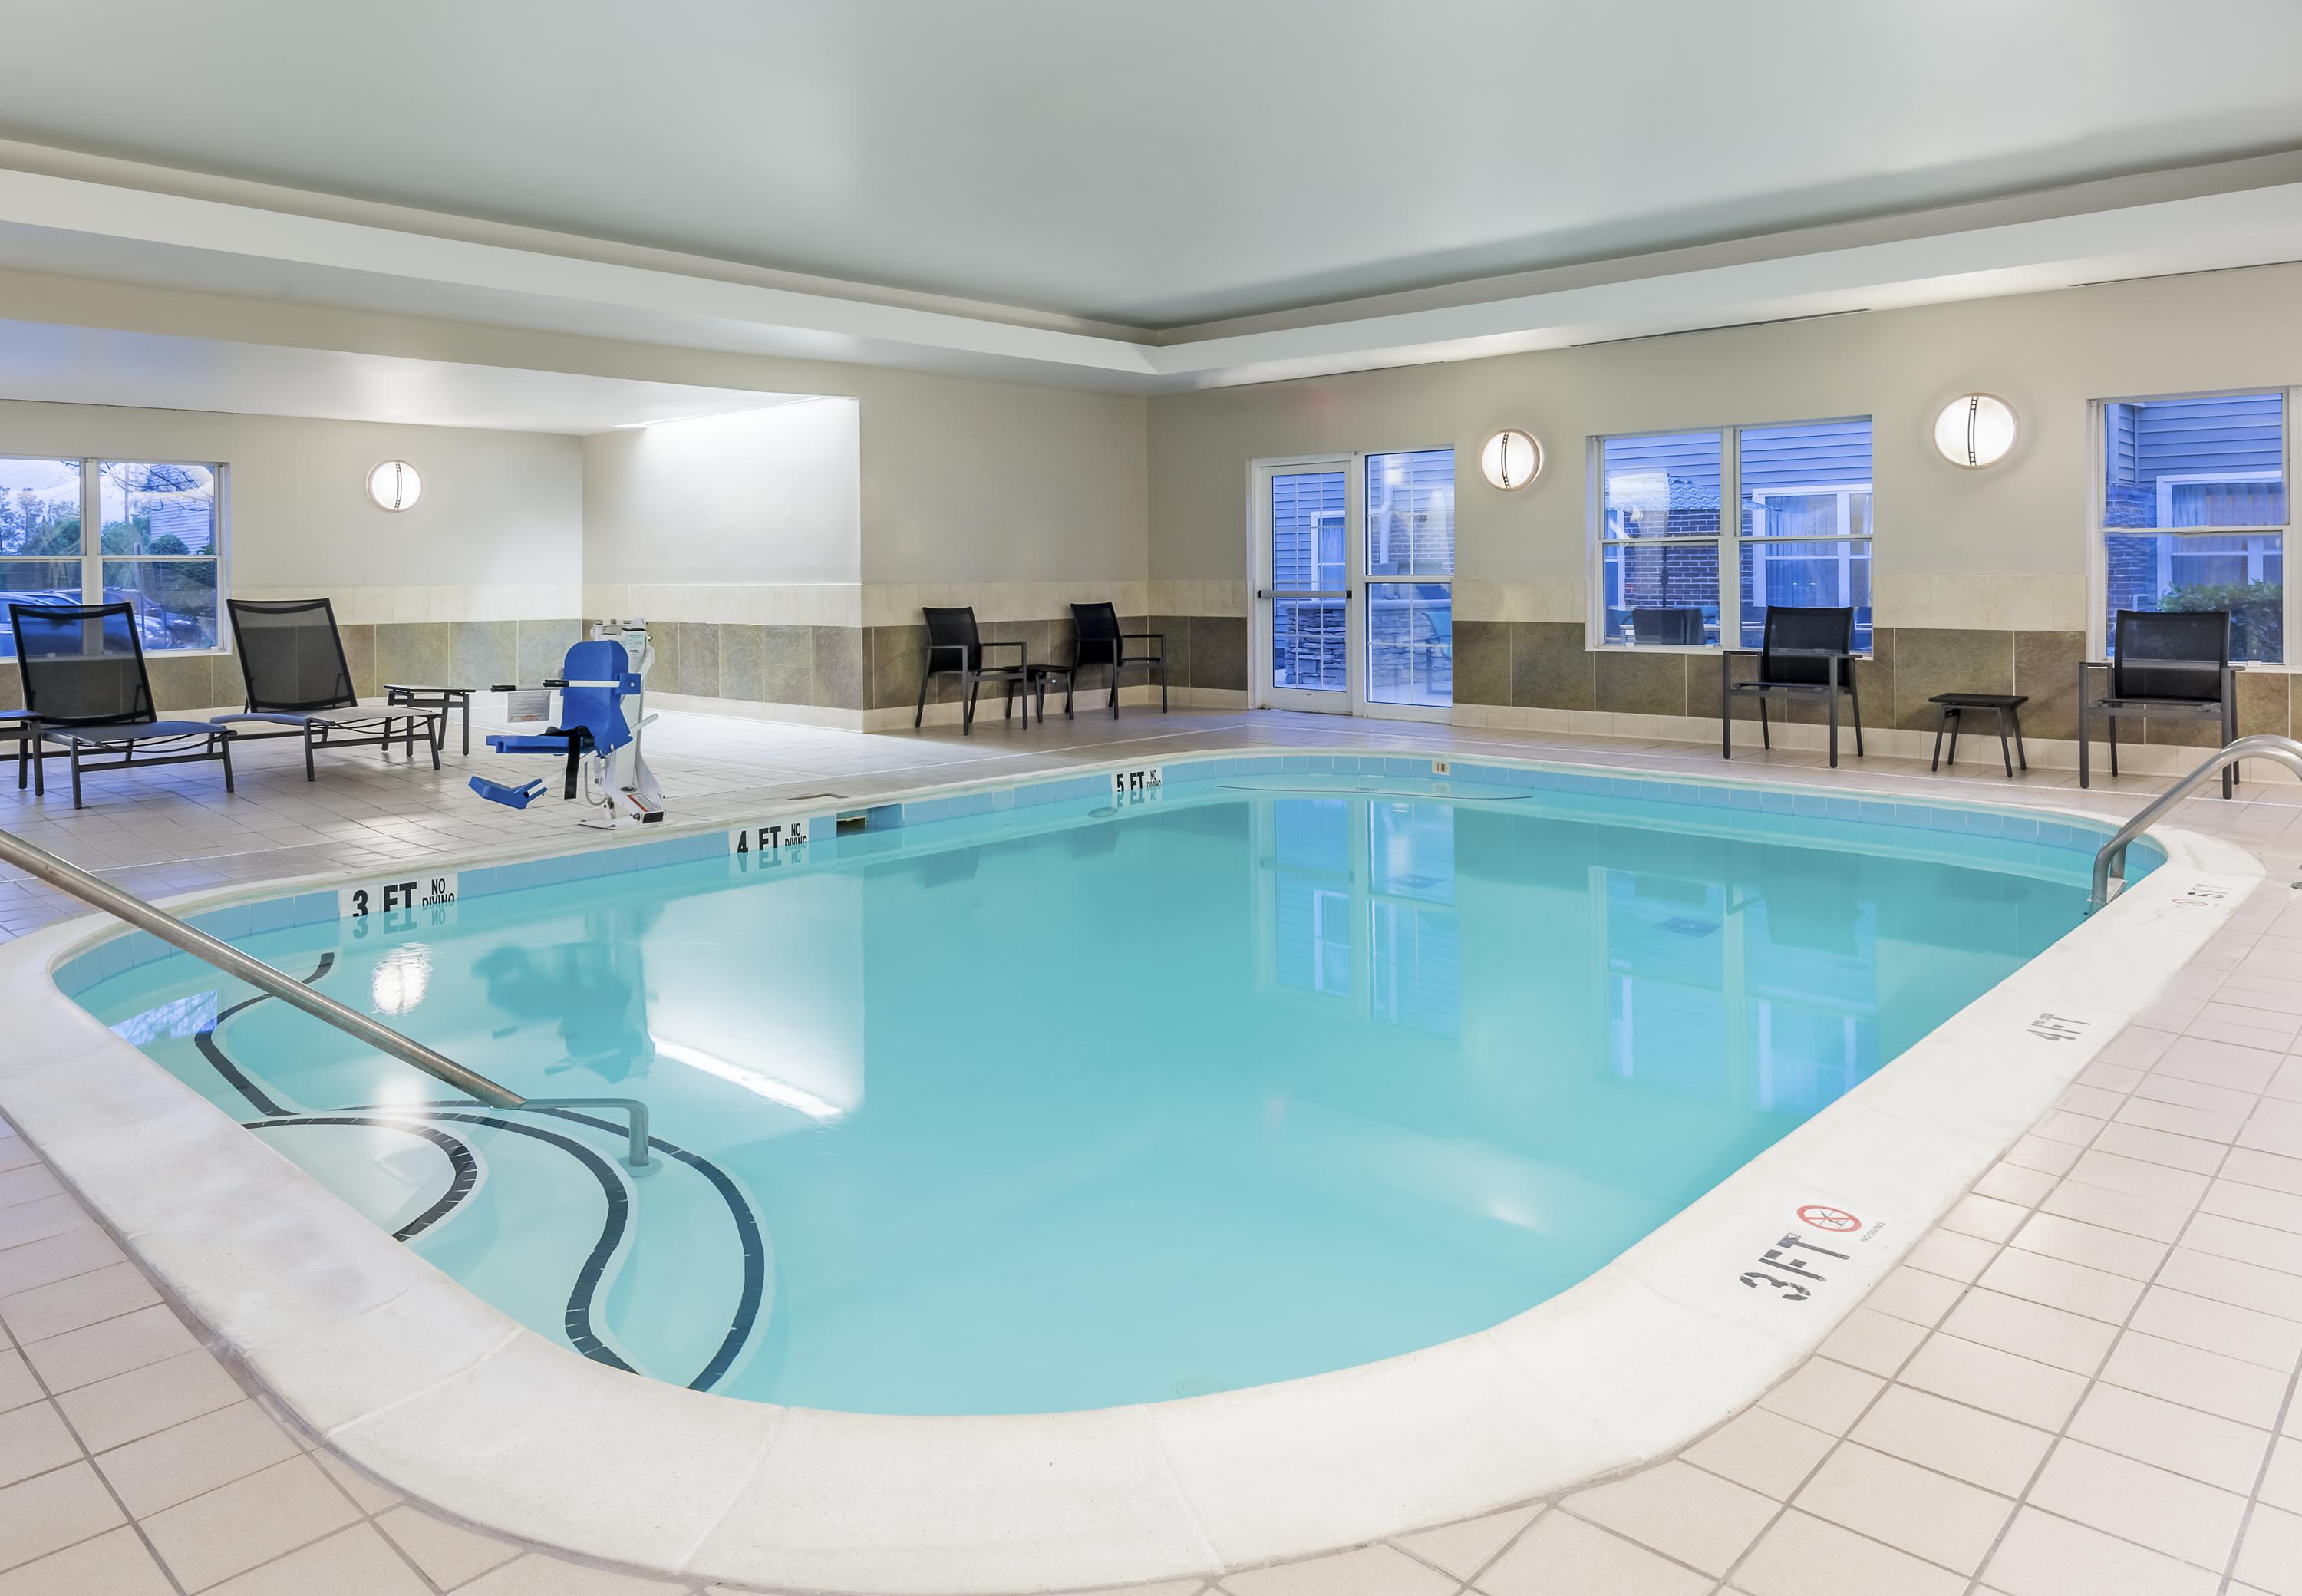 Residence Inn Macon In Macon Ga Whitepages